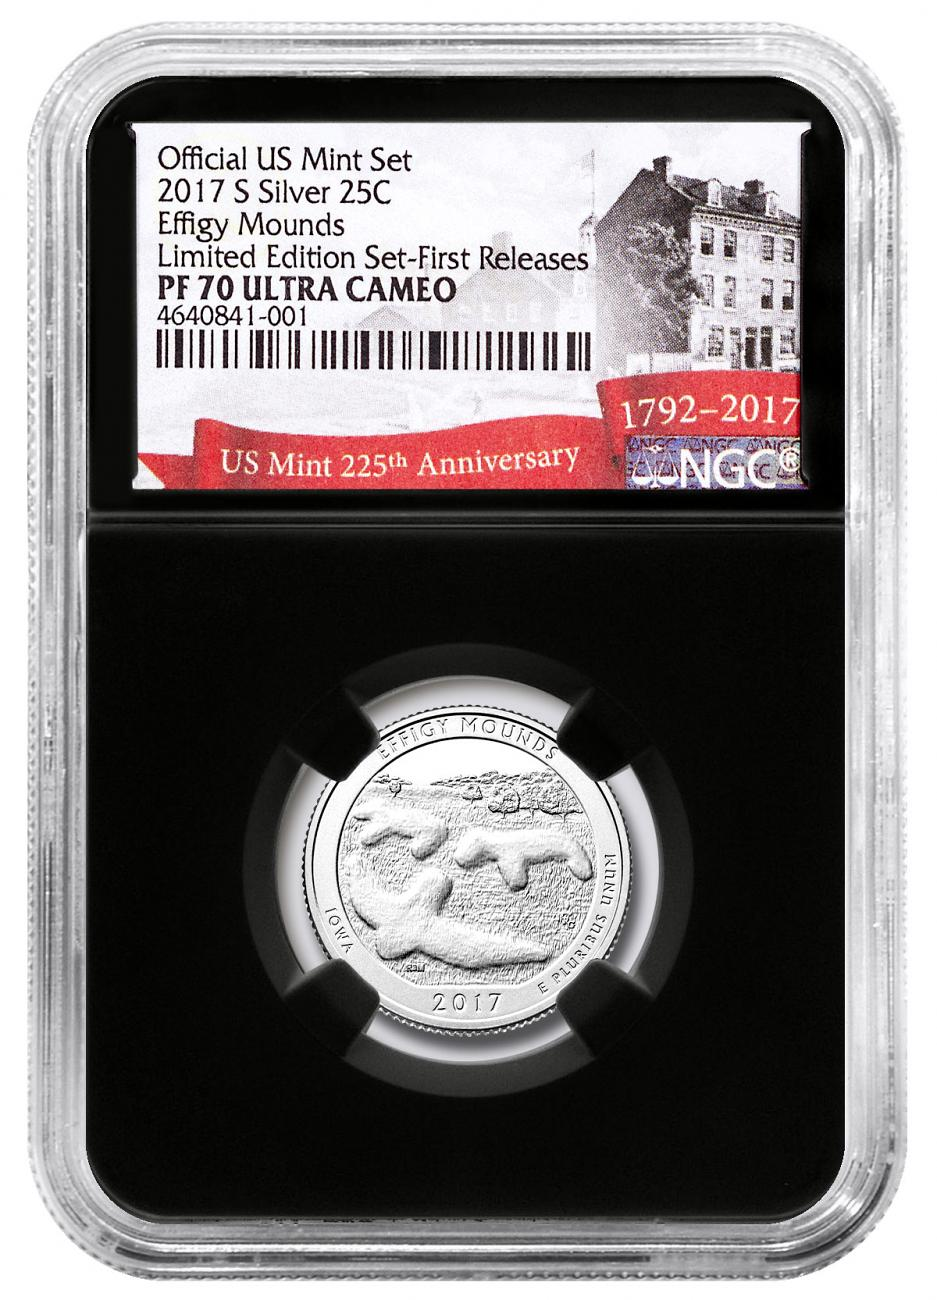 2017-S Silver Effigy Mounds Proof America the Beautiful Quarter From Limited Edition Silver Proof Set NGC PF70 UC FR Black Core Holder Exclusive U.S. Mint 225th Anniversary Label